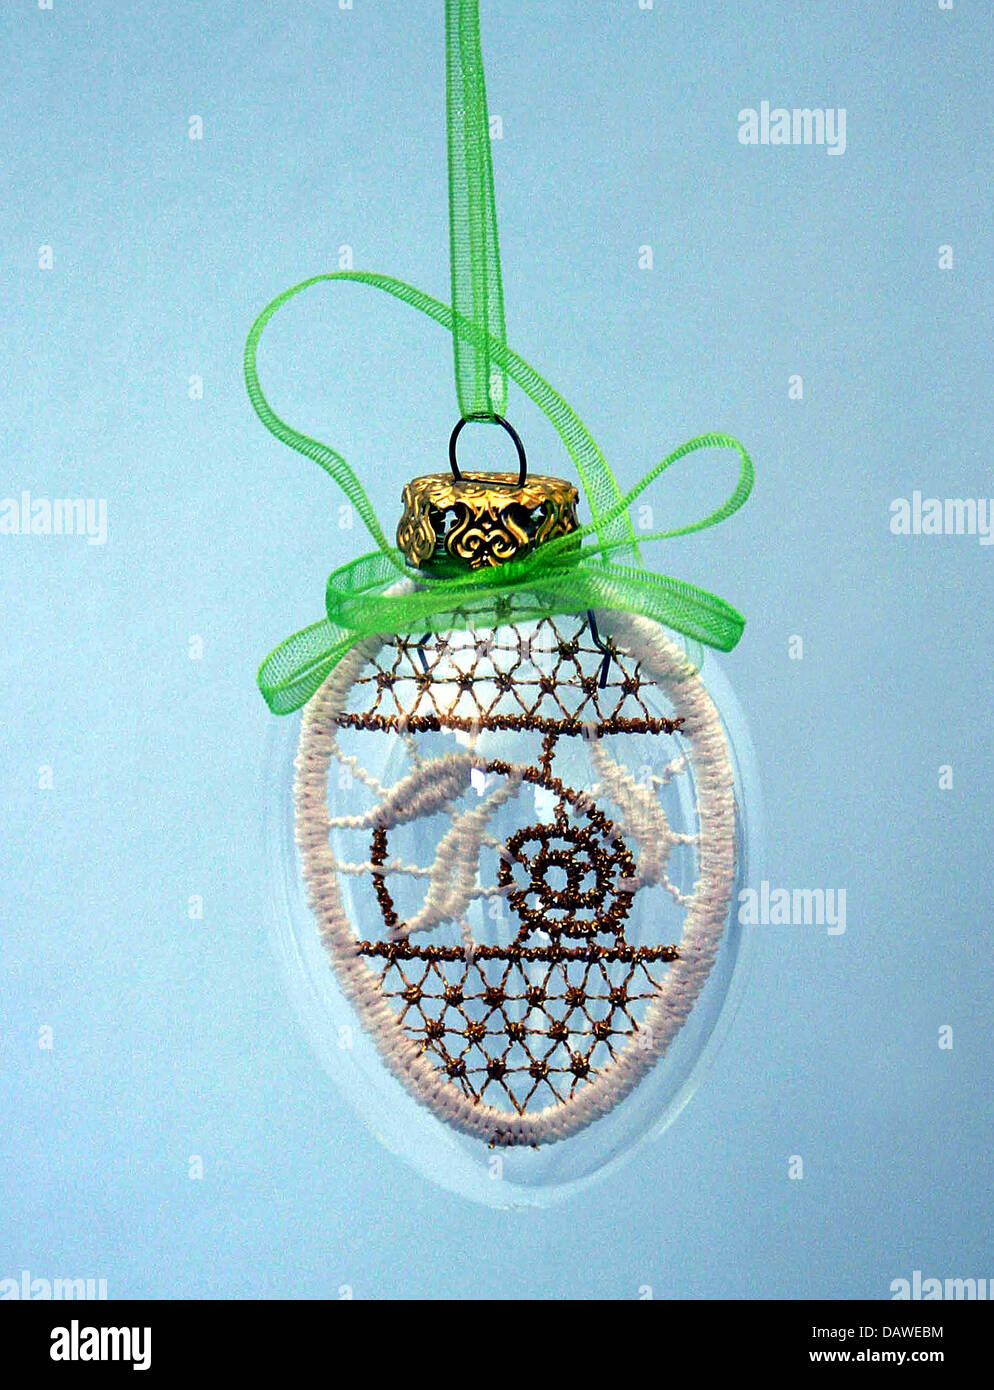 A vitreous Easter egg filled with Plauener lace pictured in Berlin, Germany, 24 March 2007. Photo: Xamax - Stock Image